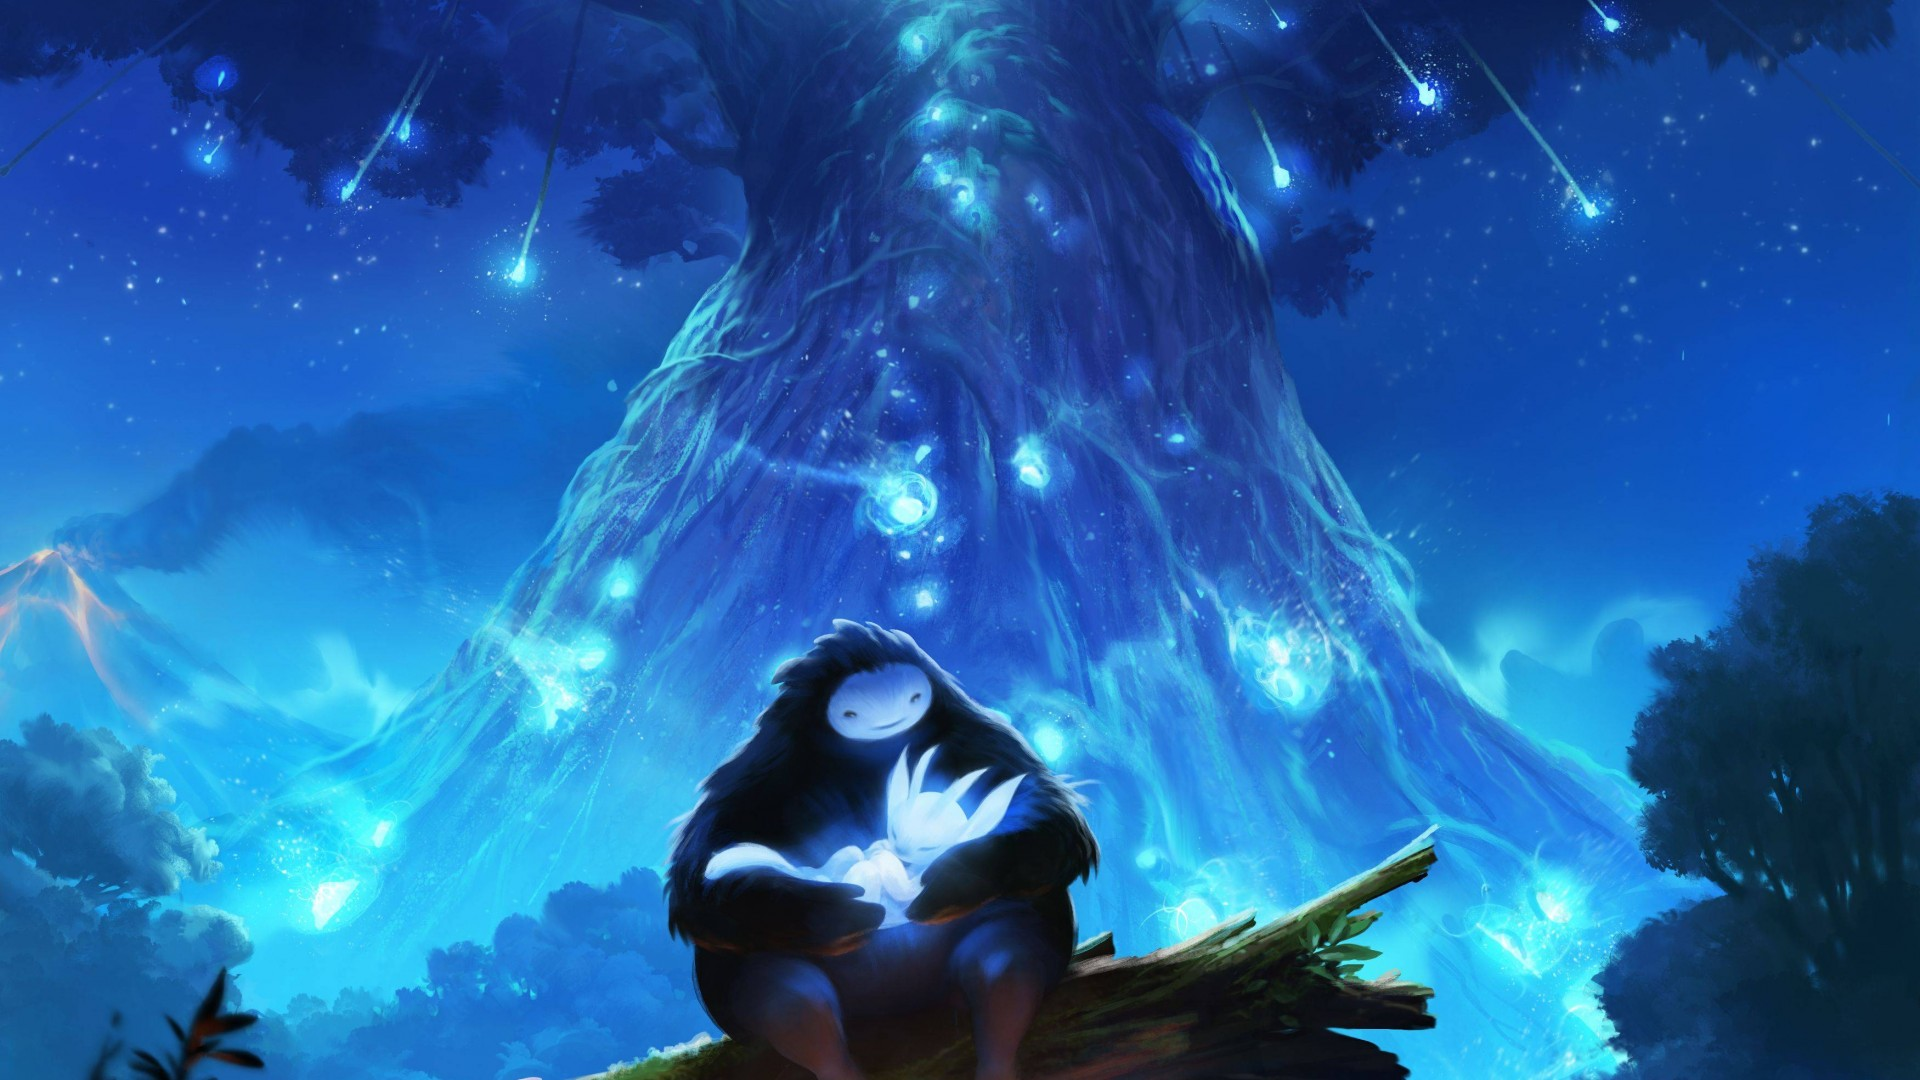 Ori and the Blind Forest Wallpaper HD | Full HD Pictures